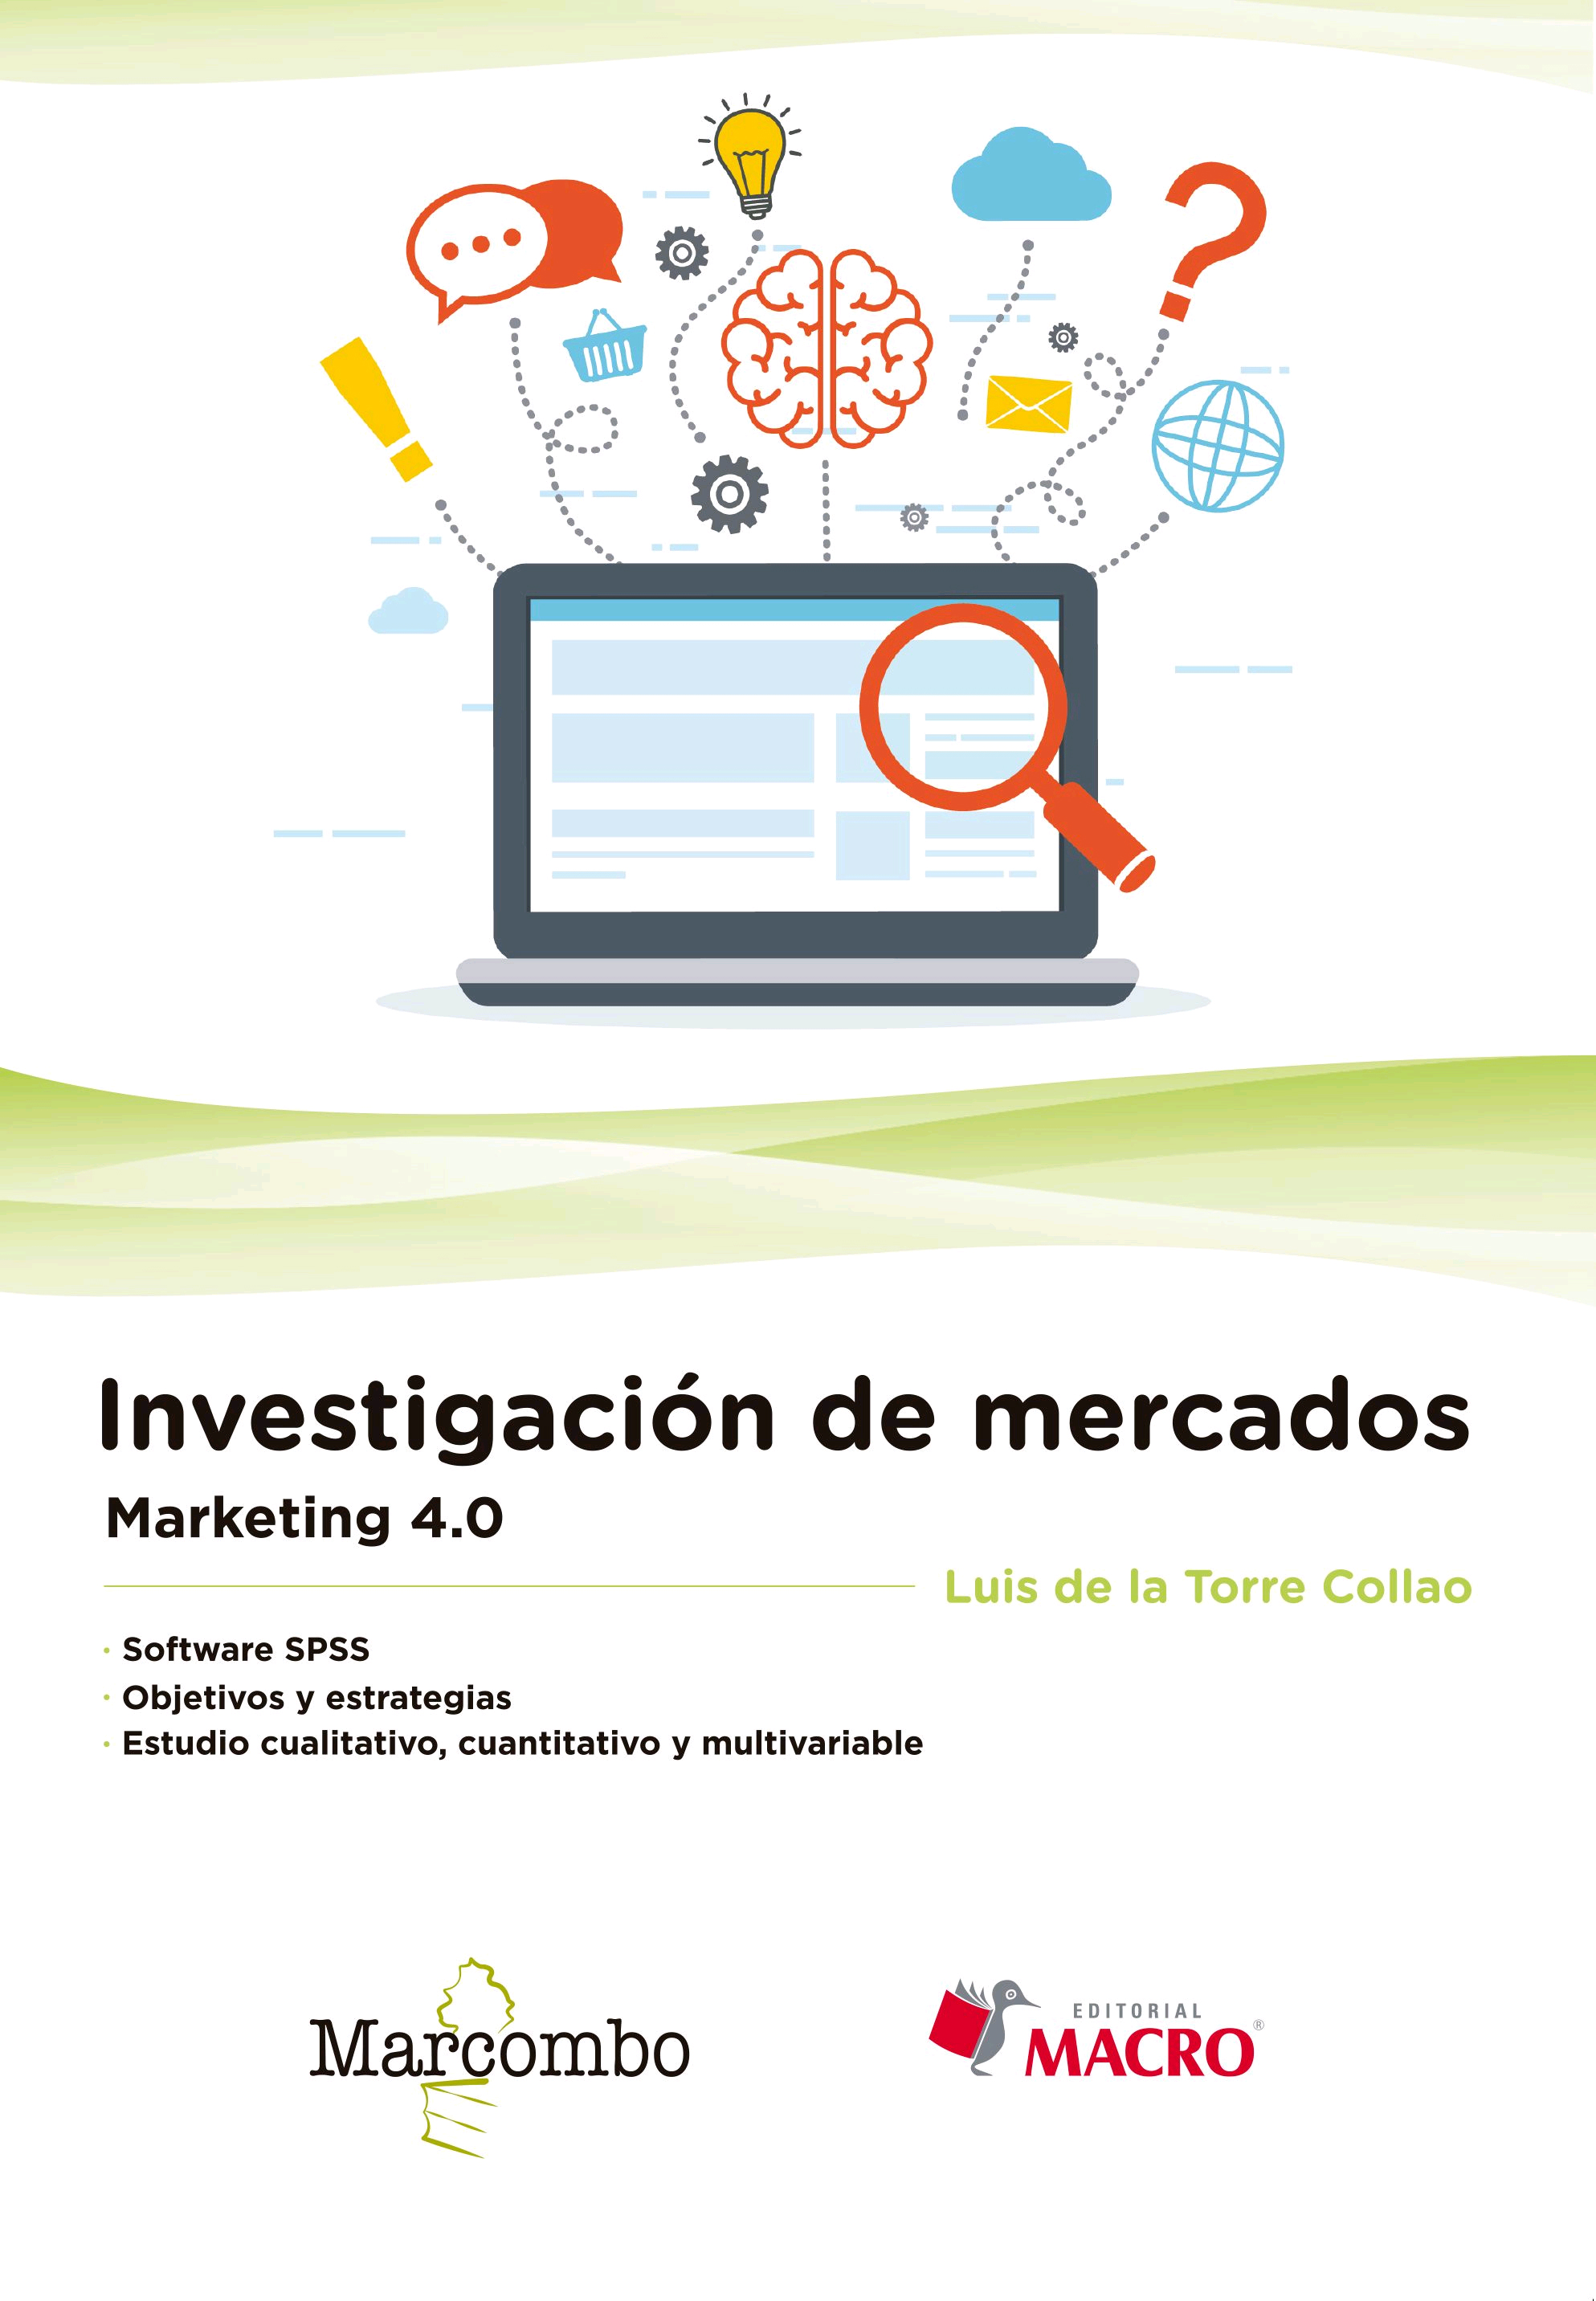 Investigación de mercados. Marketing 4.0